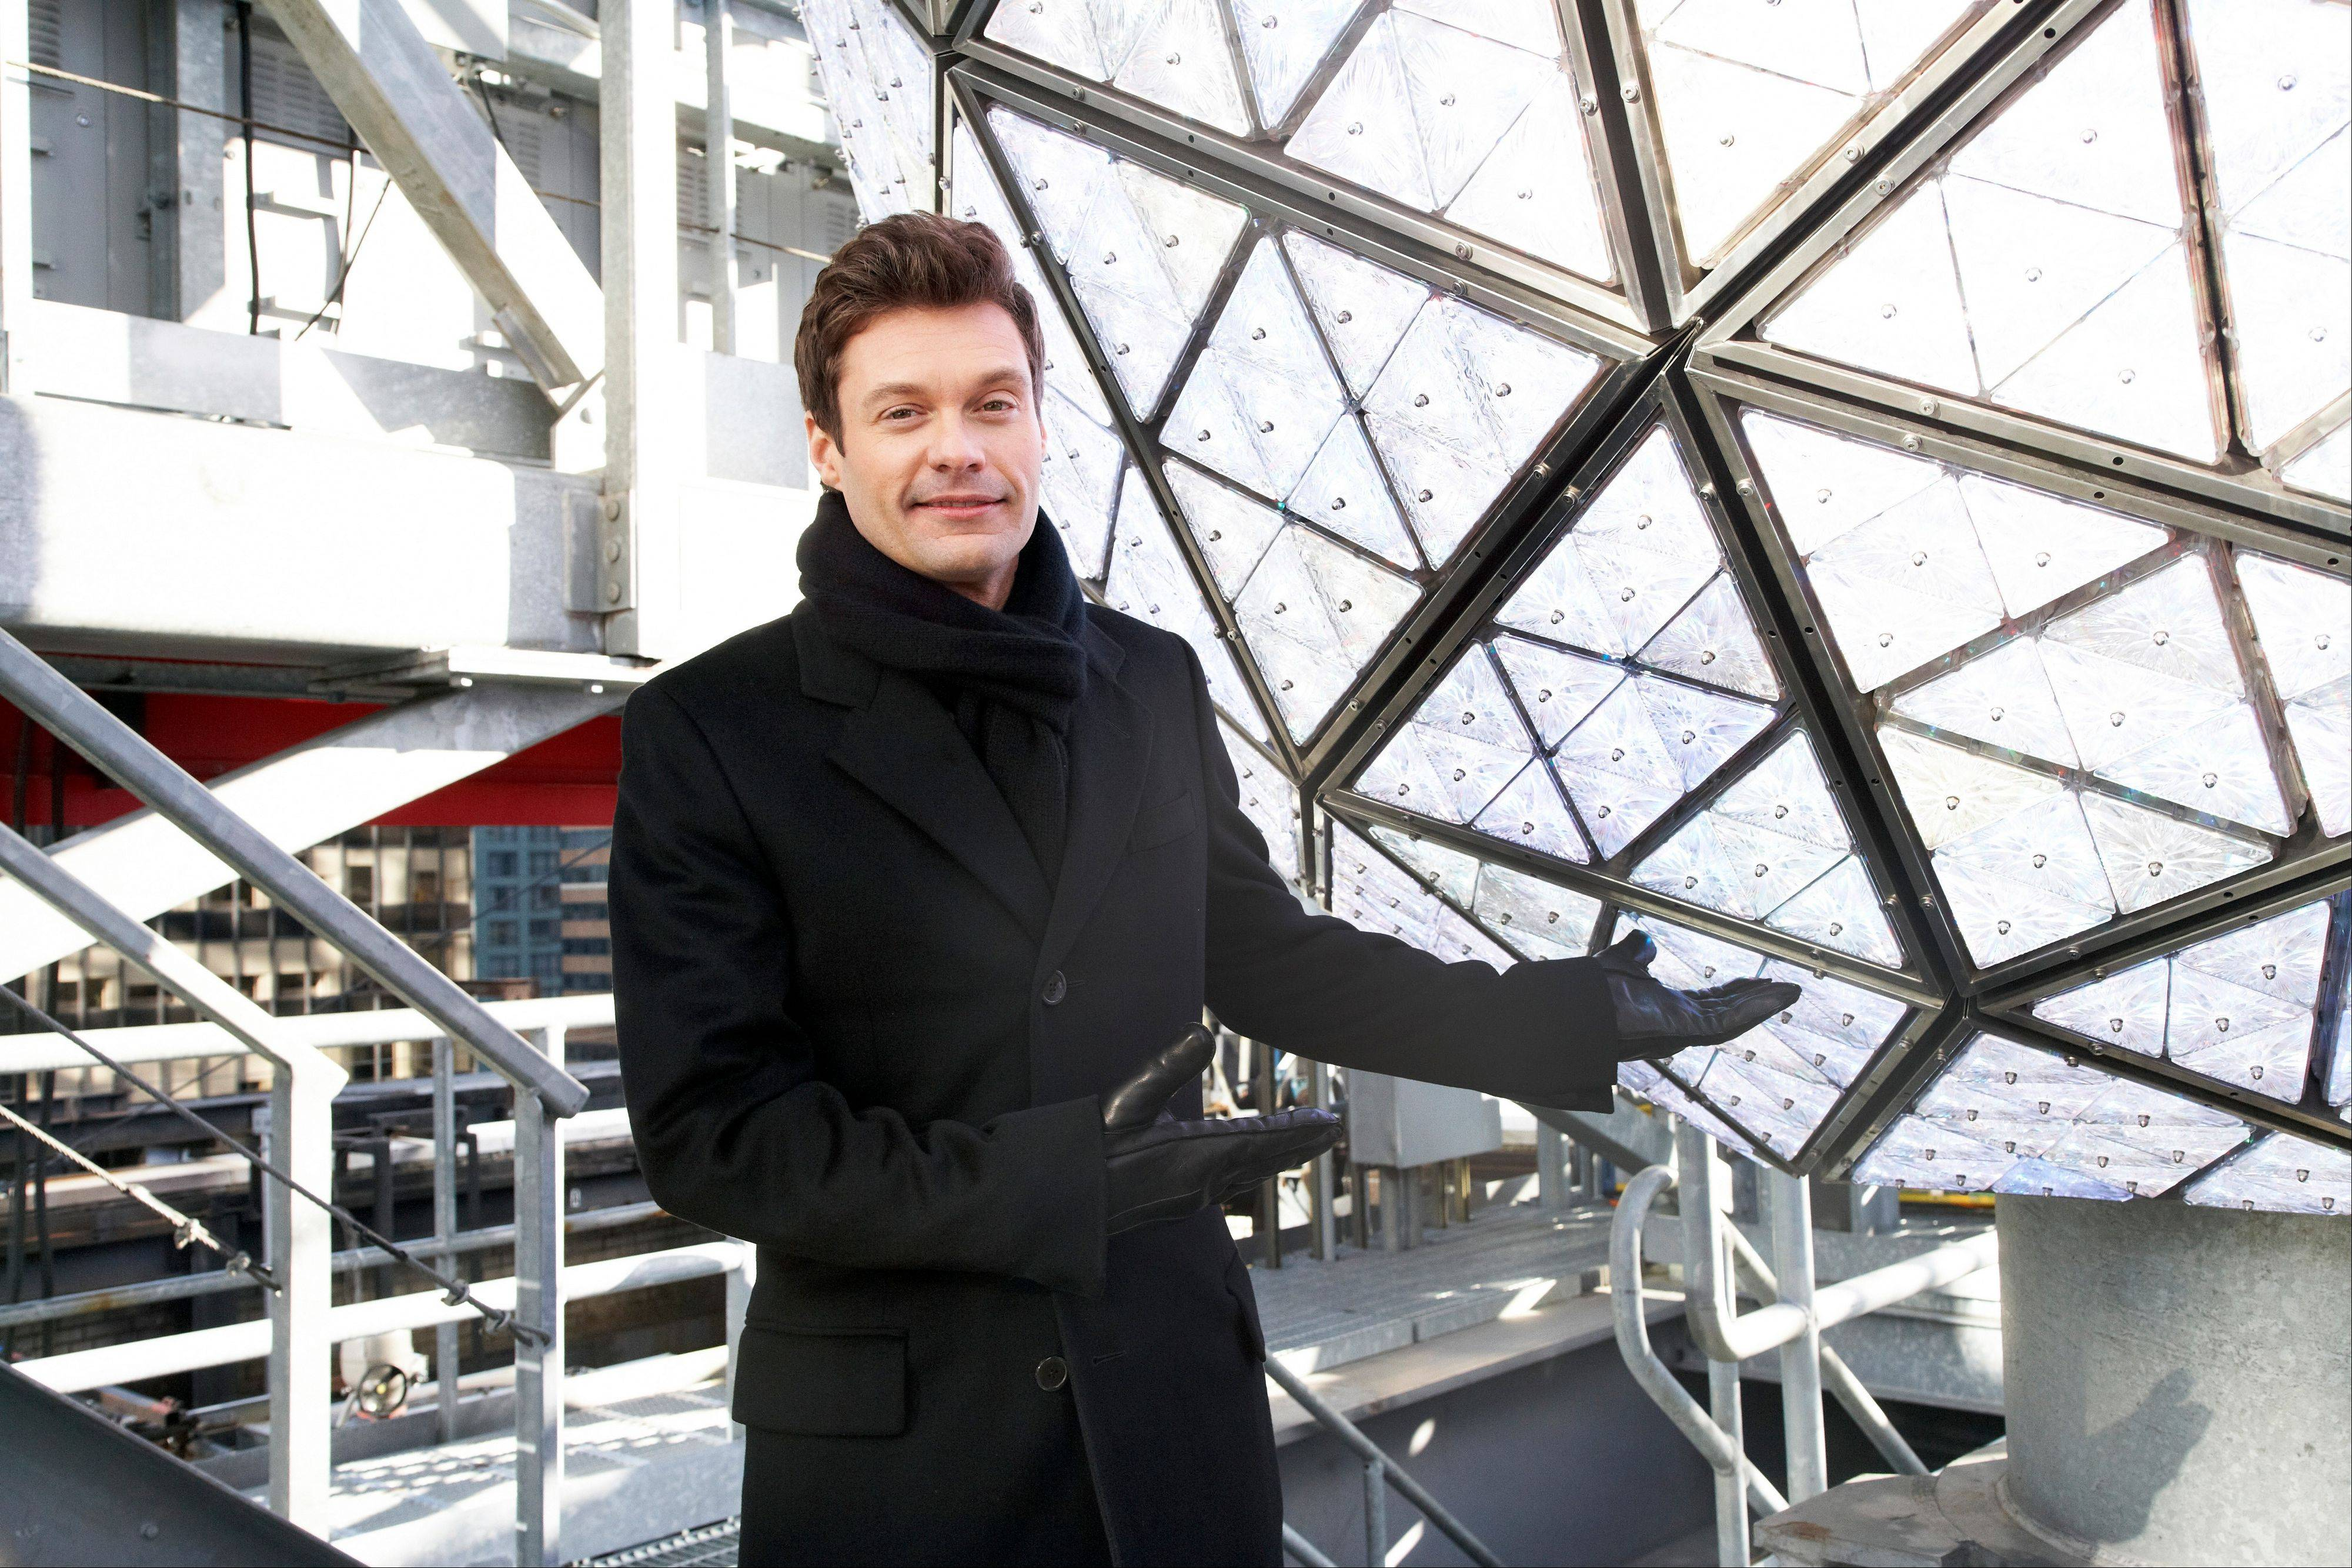 Ryan Seacrest presents the great crystal ball that will drop during �Dick Clark�s New Year�s Rockin� Eve with Ryan Seacrest� on ABC.